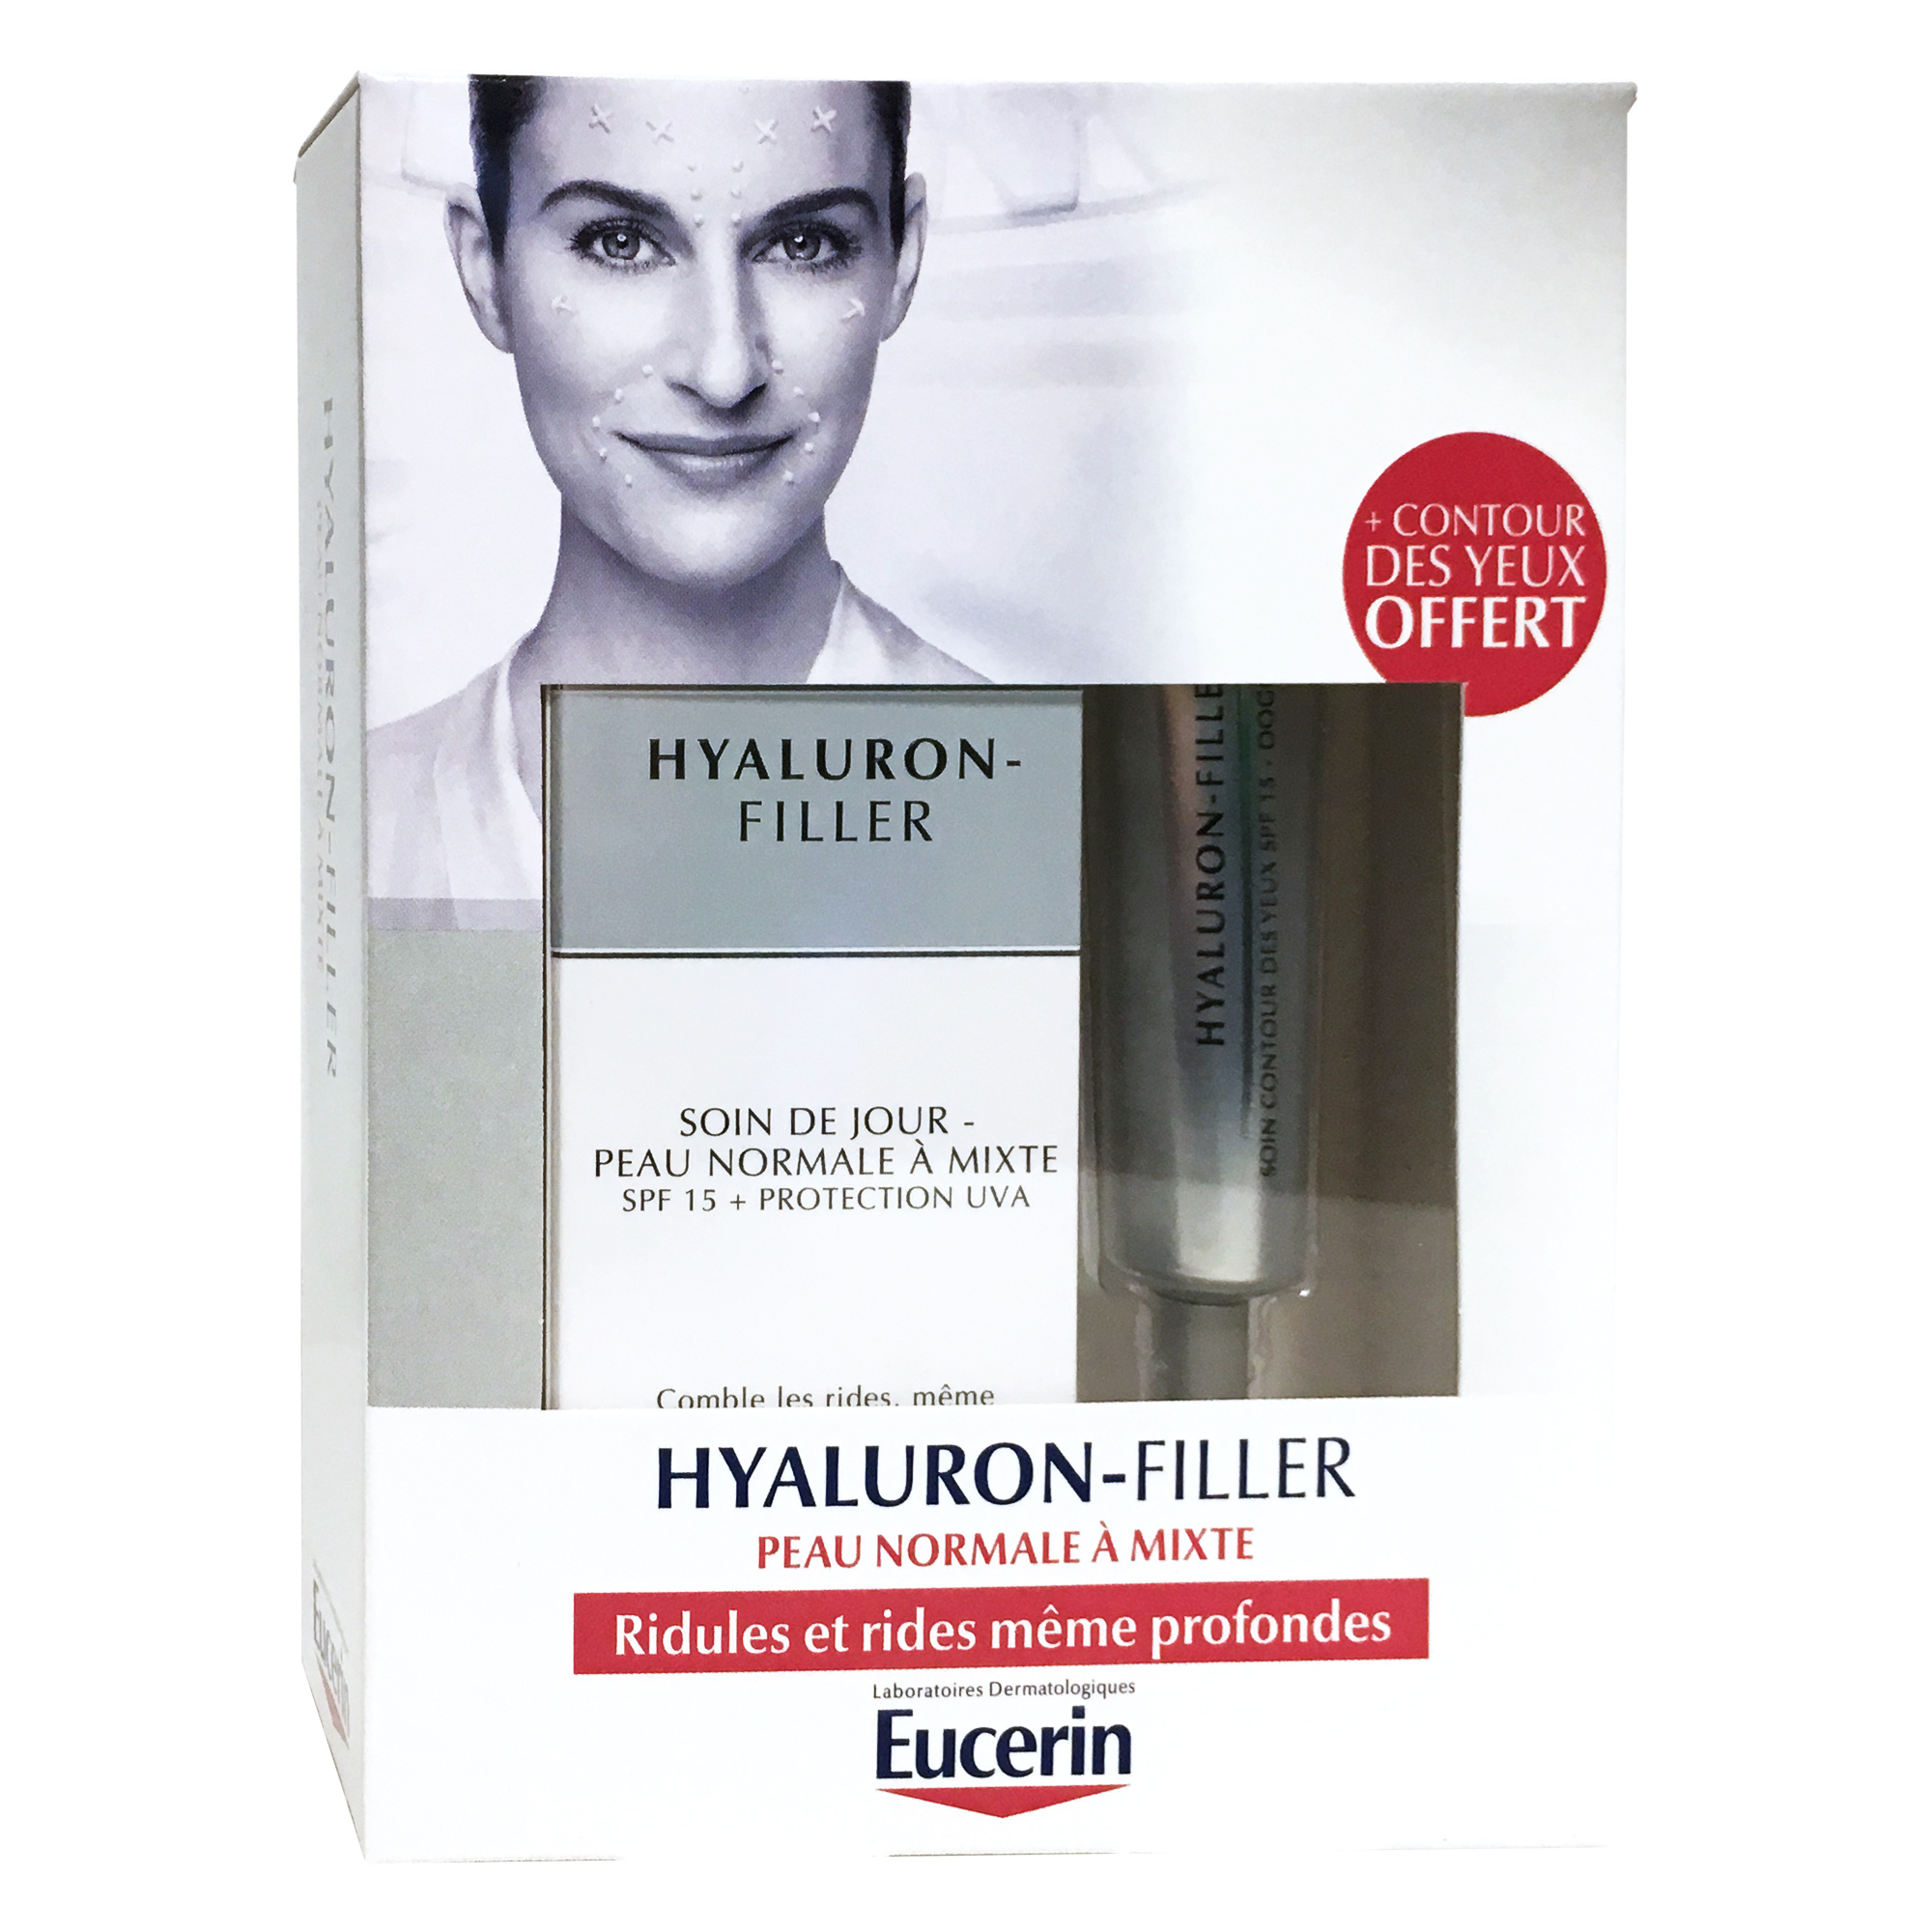 eucerin coffret hyaluron filler soin de jour peau normale mixte 50 ml soin contour des yeux. Black Bedroom Furniture Sets. Home Design Ideas